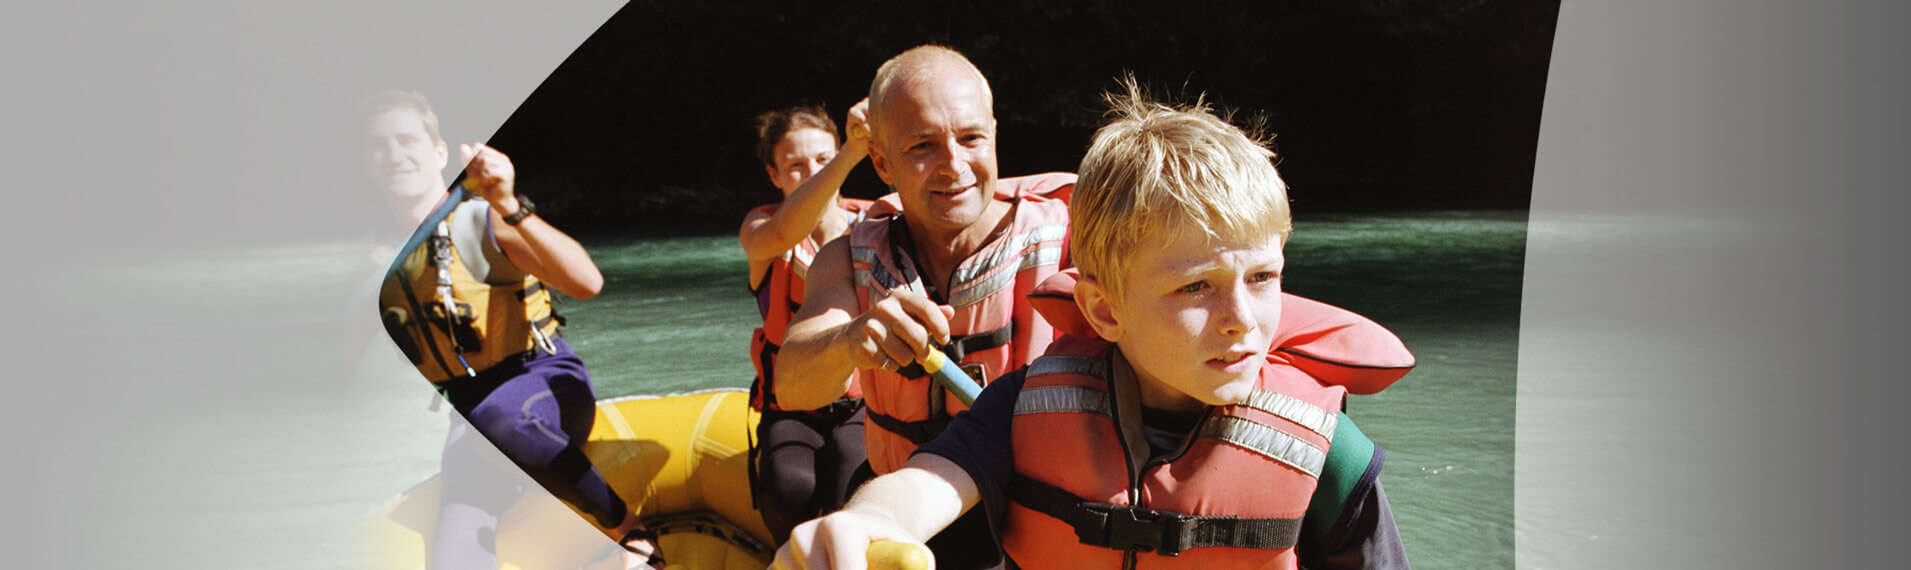 Family paddling on a raft